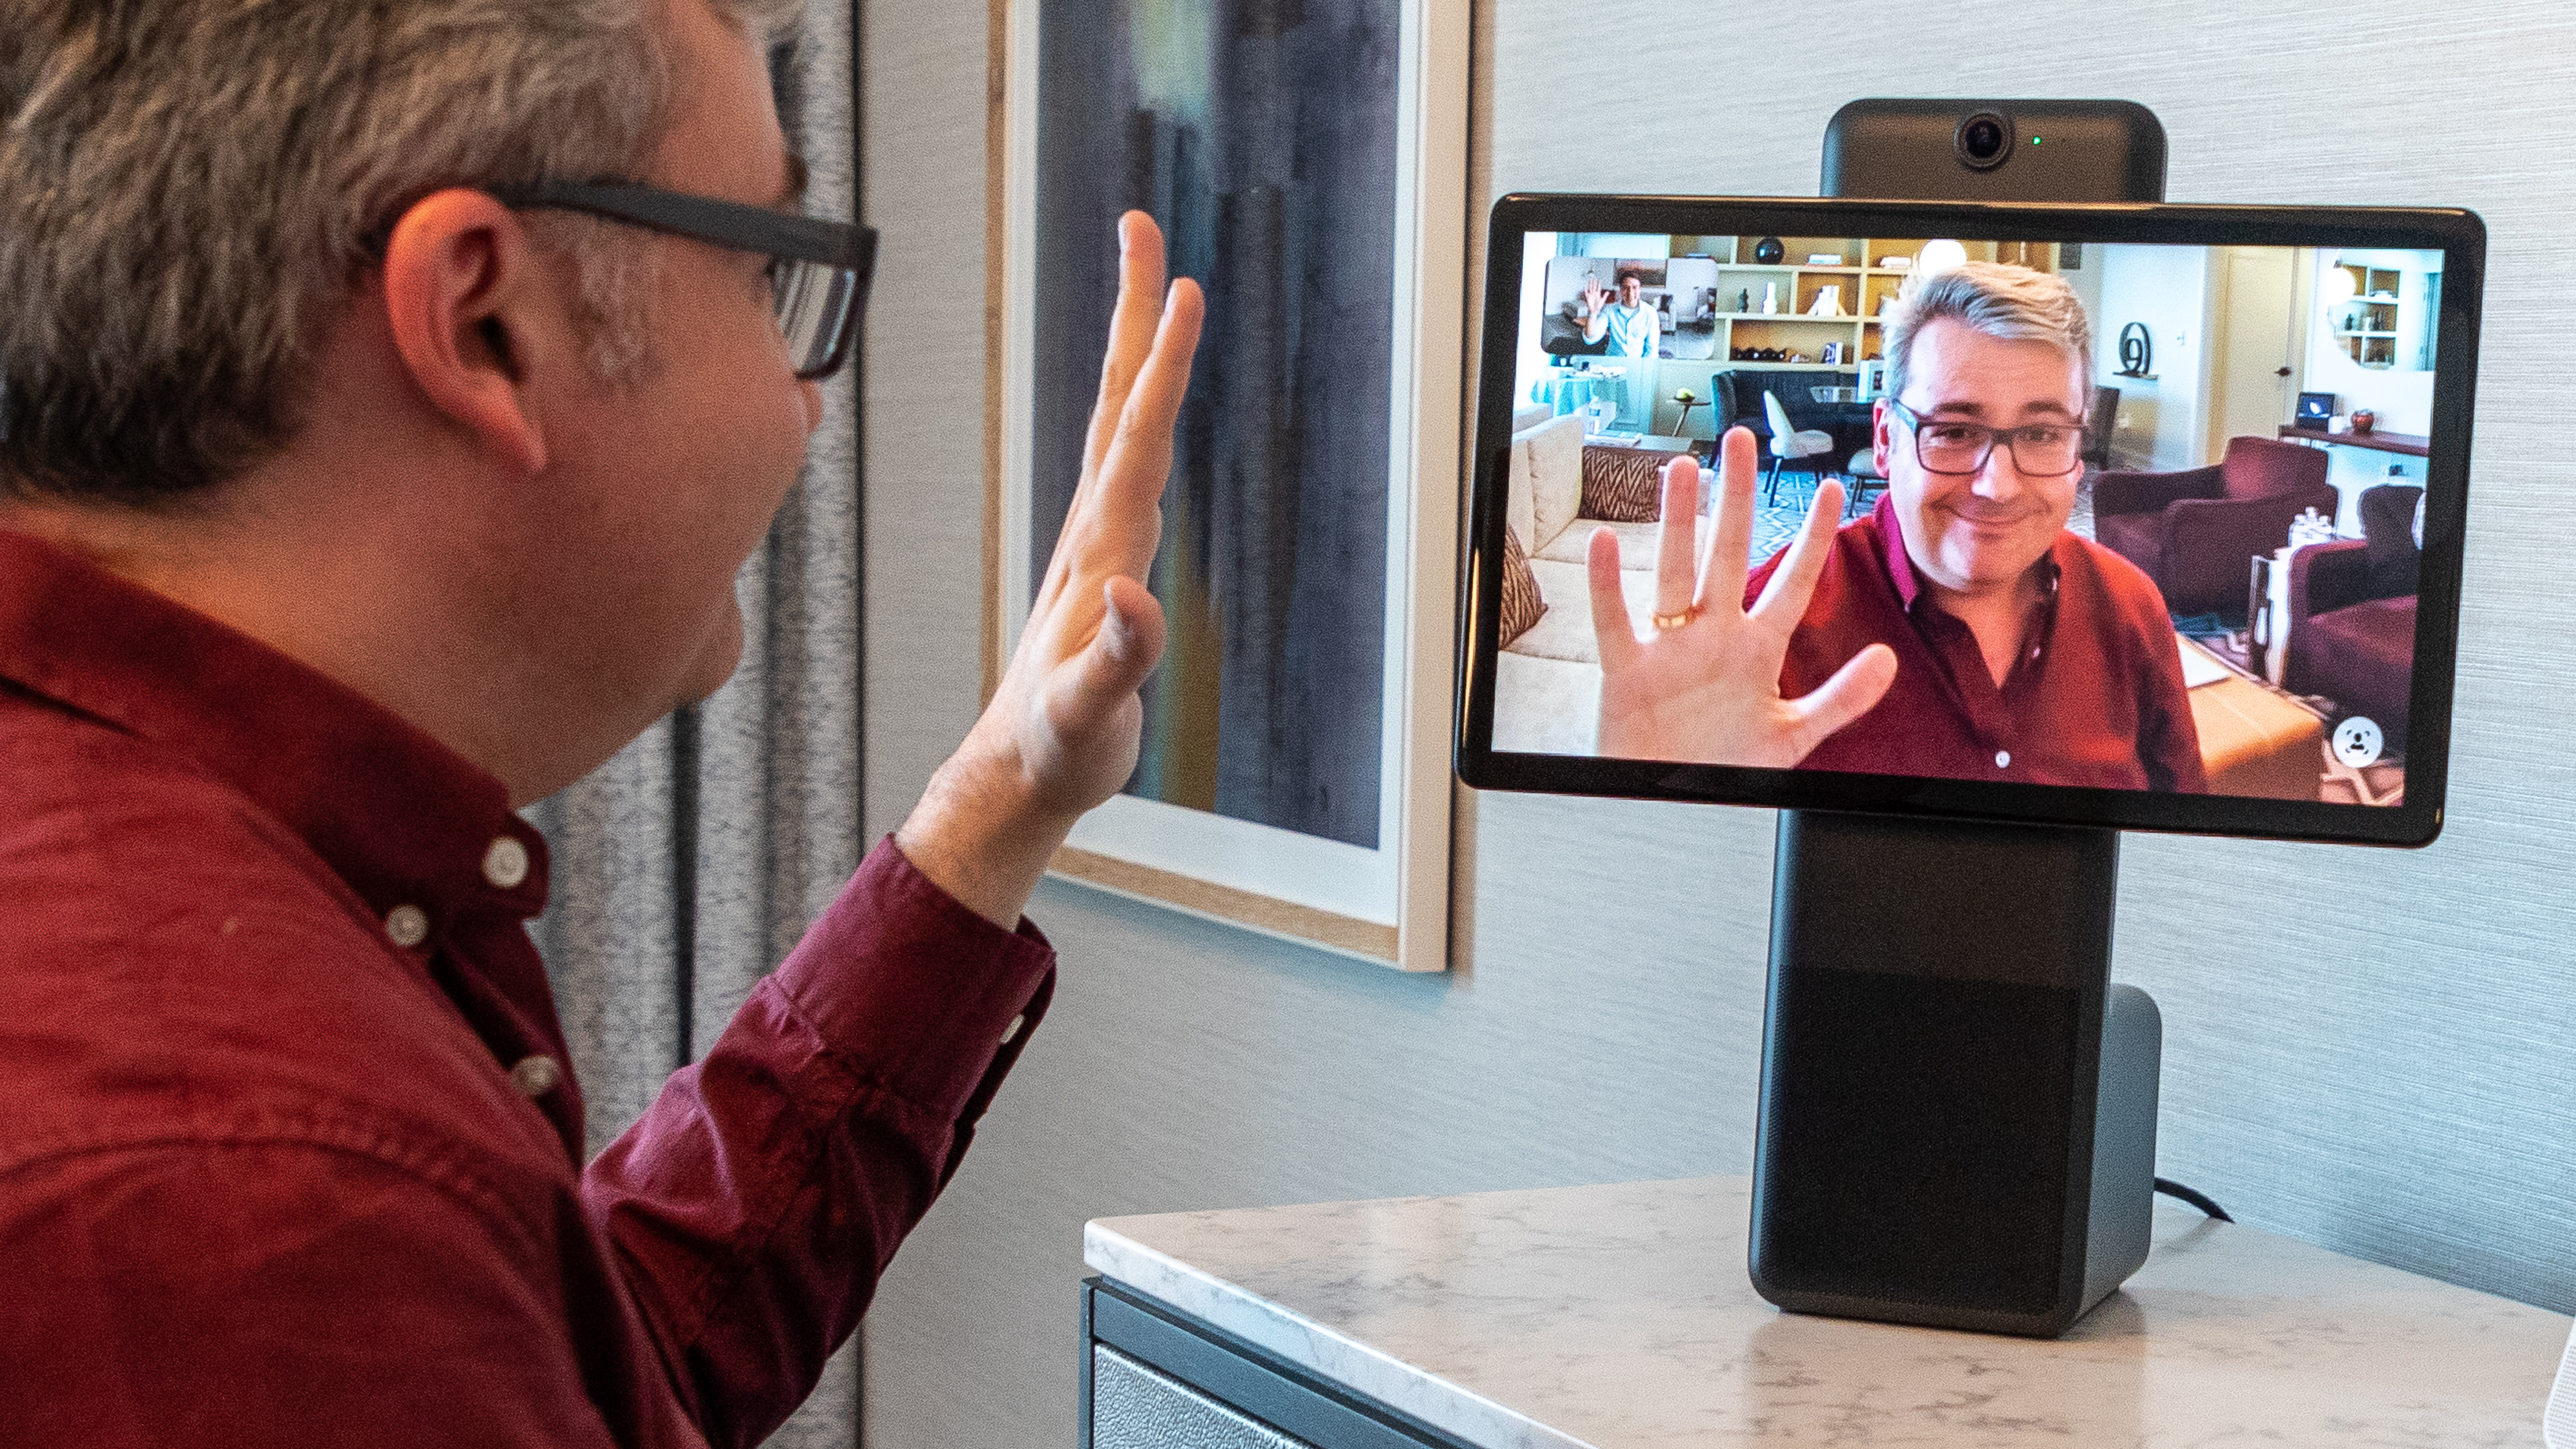 Facebook unveils the Portal, a video chat camera for the